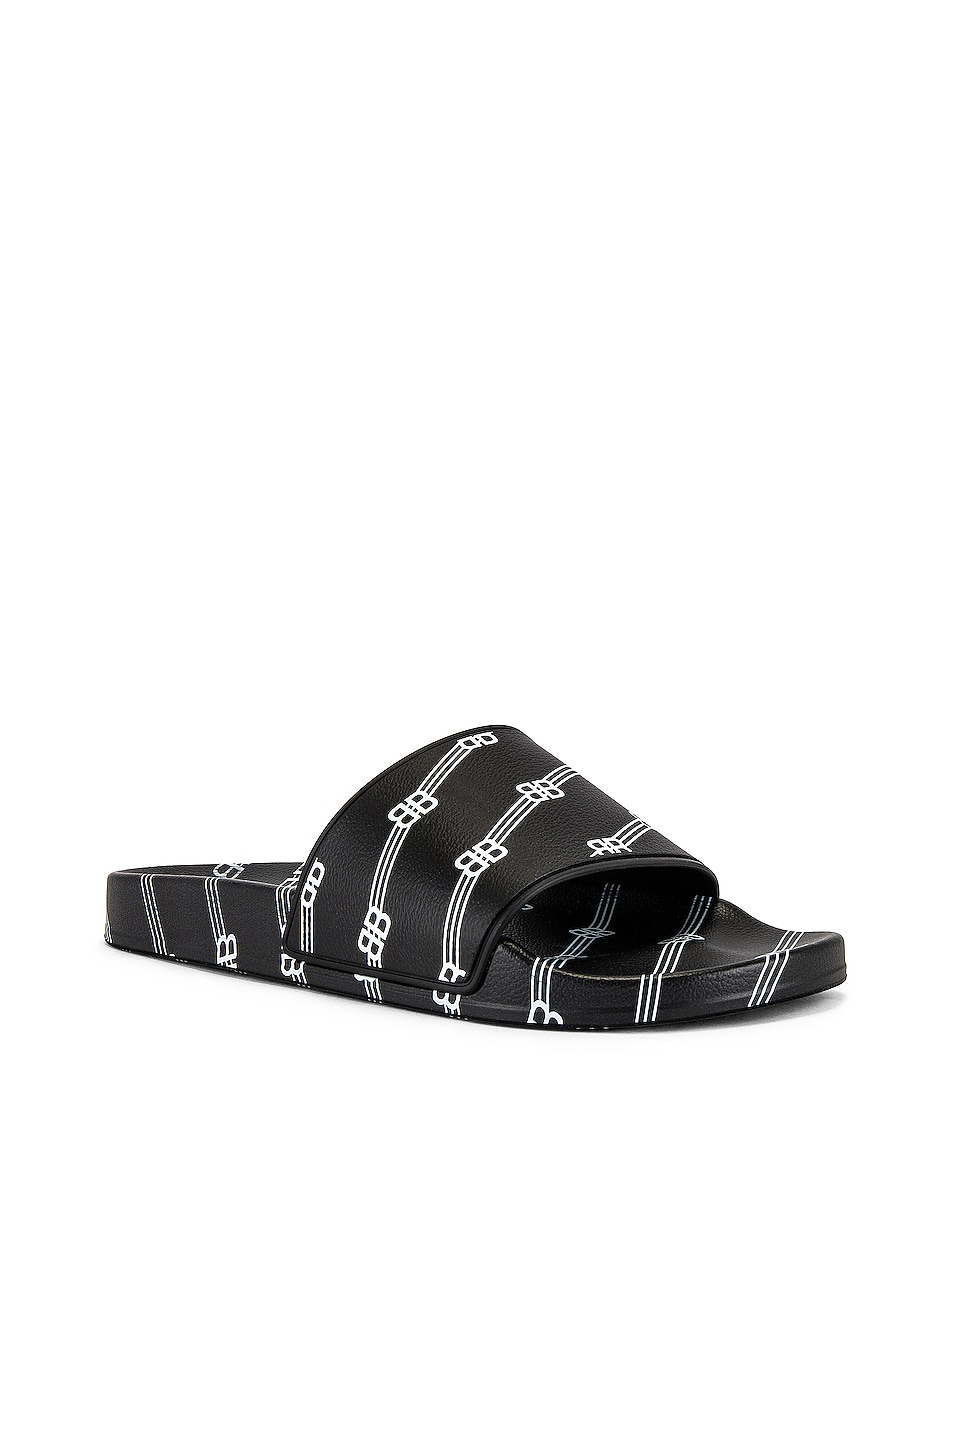 Image 1 of Balenciaga Pool Slide in Black